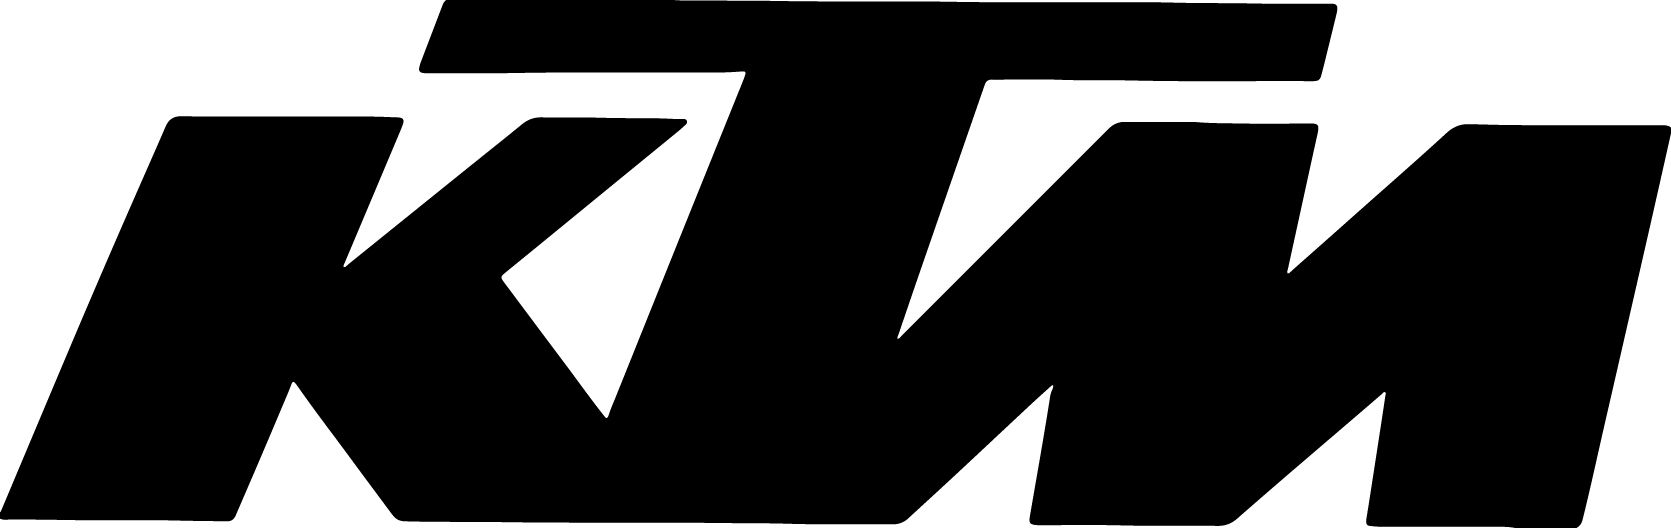 Ktm Racing Vinyl Sticker Decal Can Be Placed On Any Smooth Surface Notebook Window Car Bumper Wall Decor Size 7 X3 Ktm Motocross Logo Logos